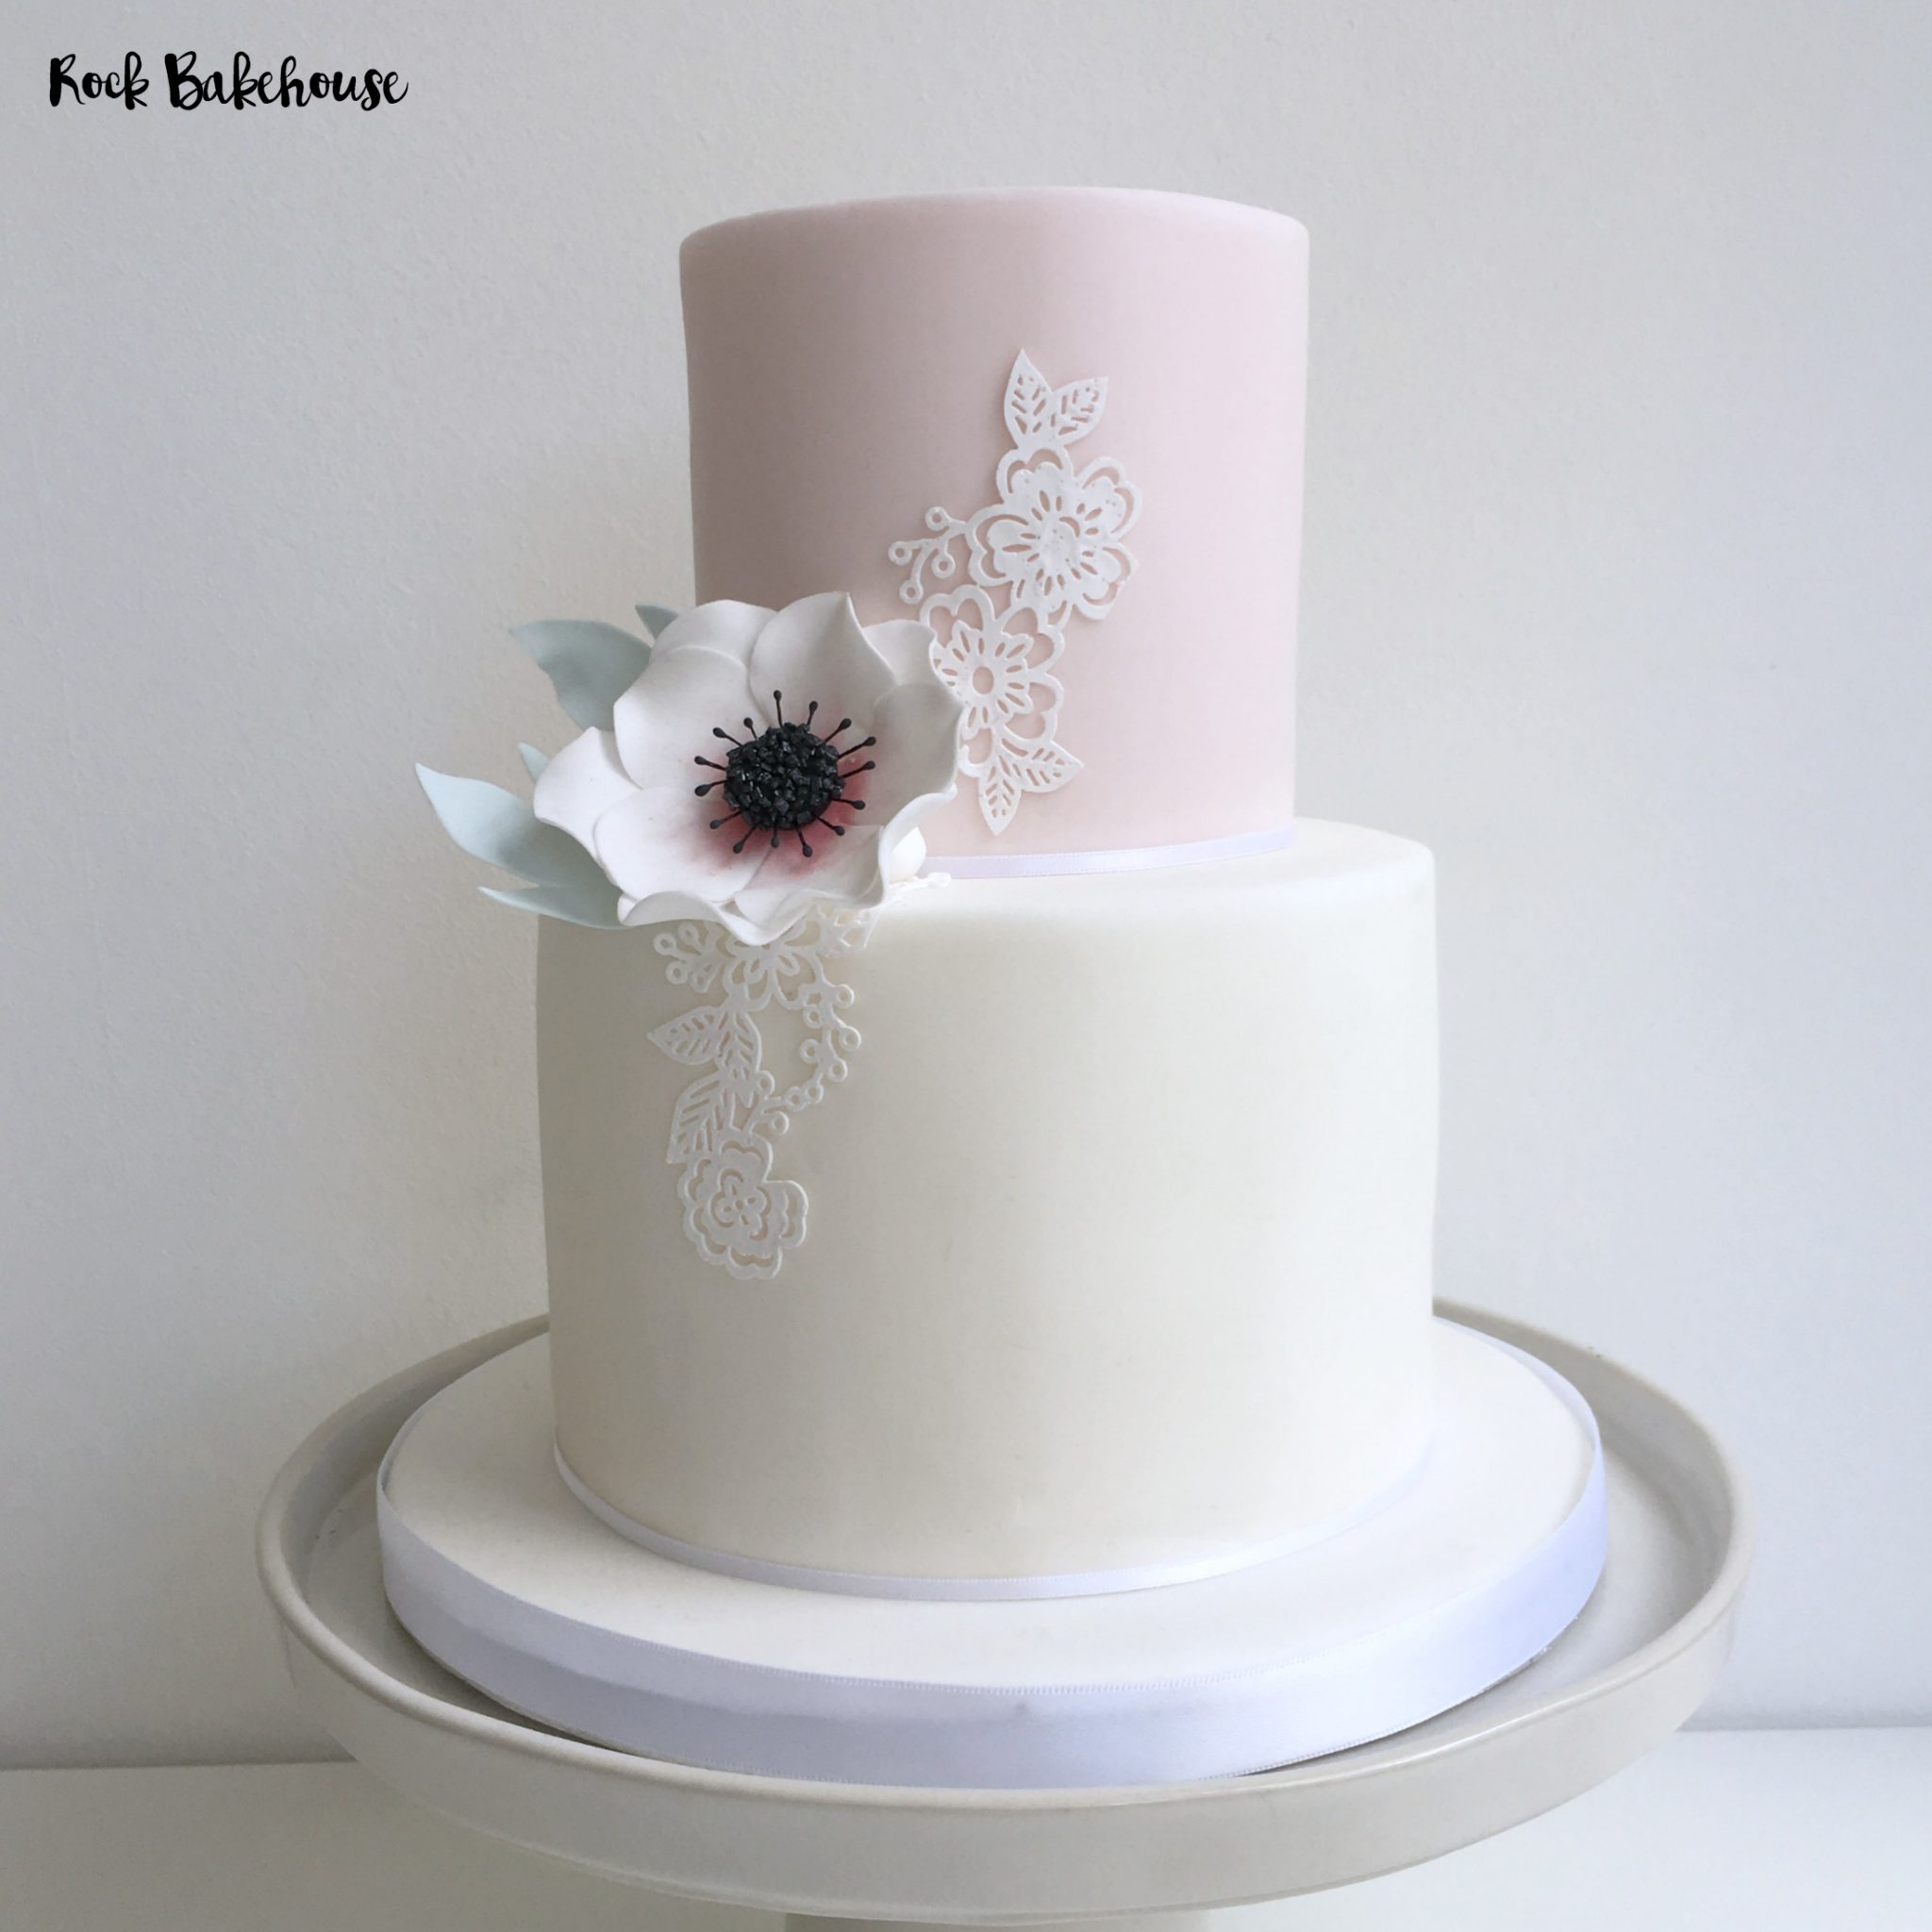 Cake Decorating Classes Private Classes Rock Bakehouse